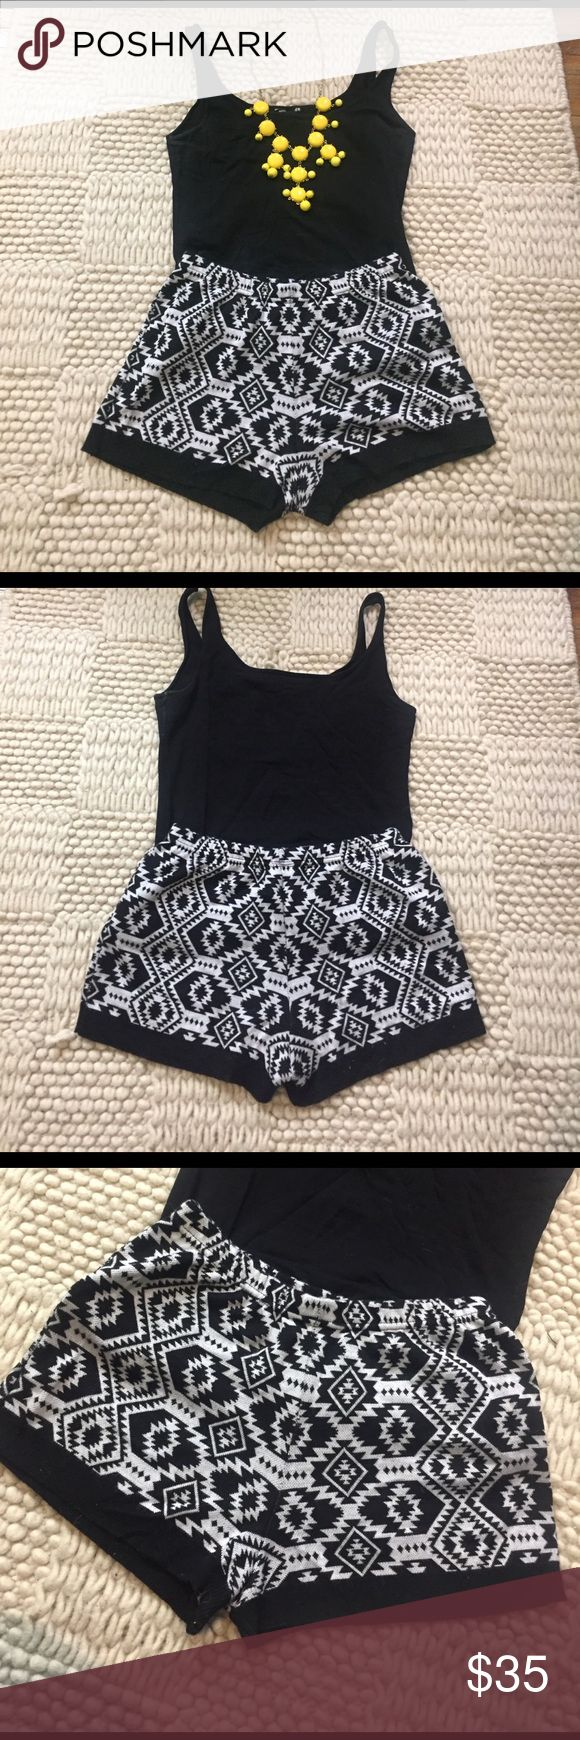 Sparkle & Fade Tribal shorts Black and white tribal knit shorts. Only worn once. Urban Outfitters Shorts